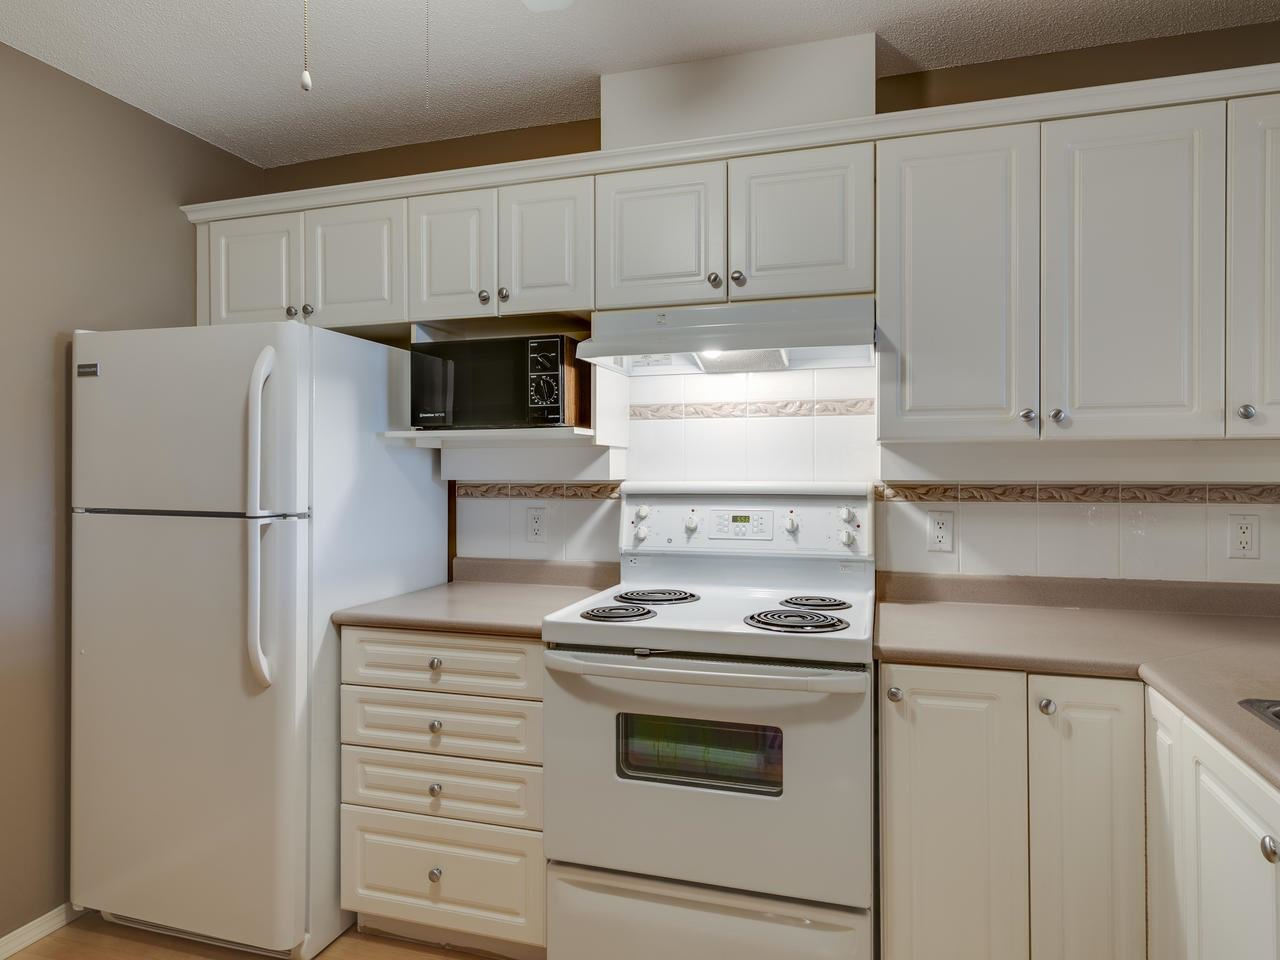 """Photo 7: Photos: 404 12148 224 Street in Maple Ridge: East Central Condo for sale in """"Panorama"""" : MLS®# R2461995"""